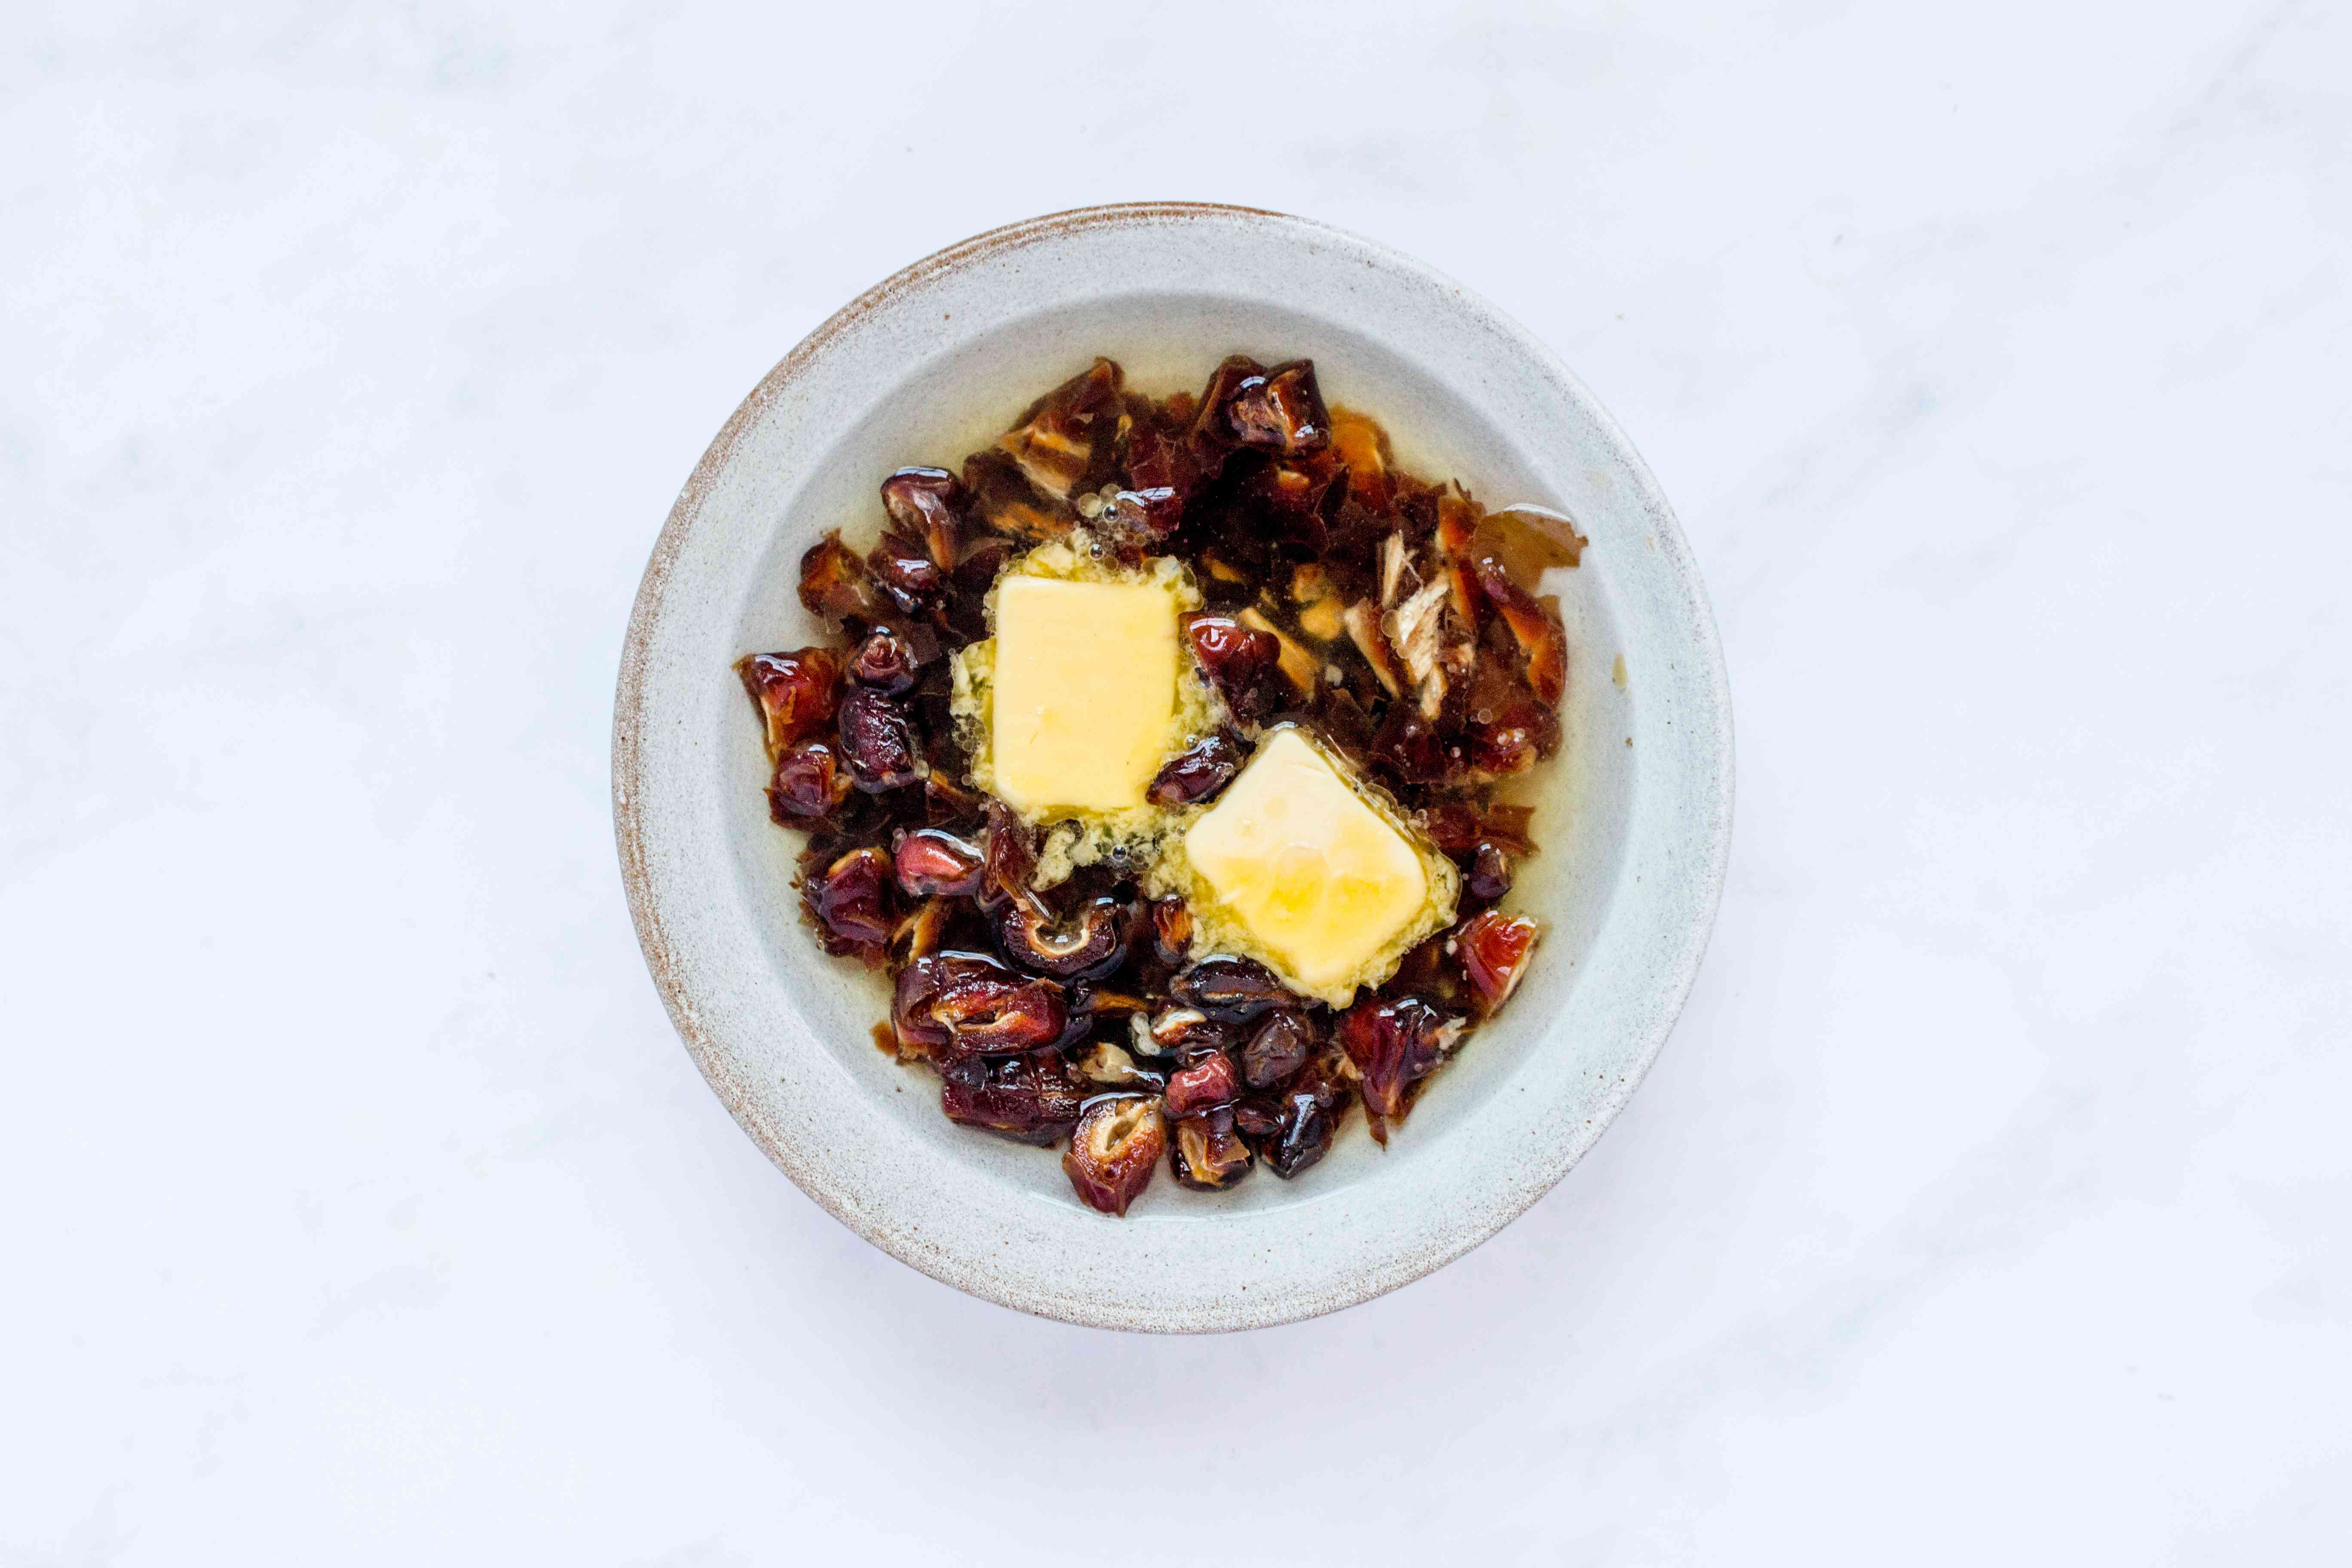 pour the boiling water over the chopped dates in bowl, and add butter